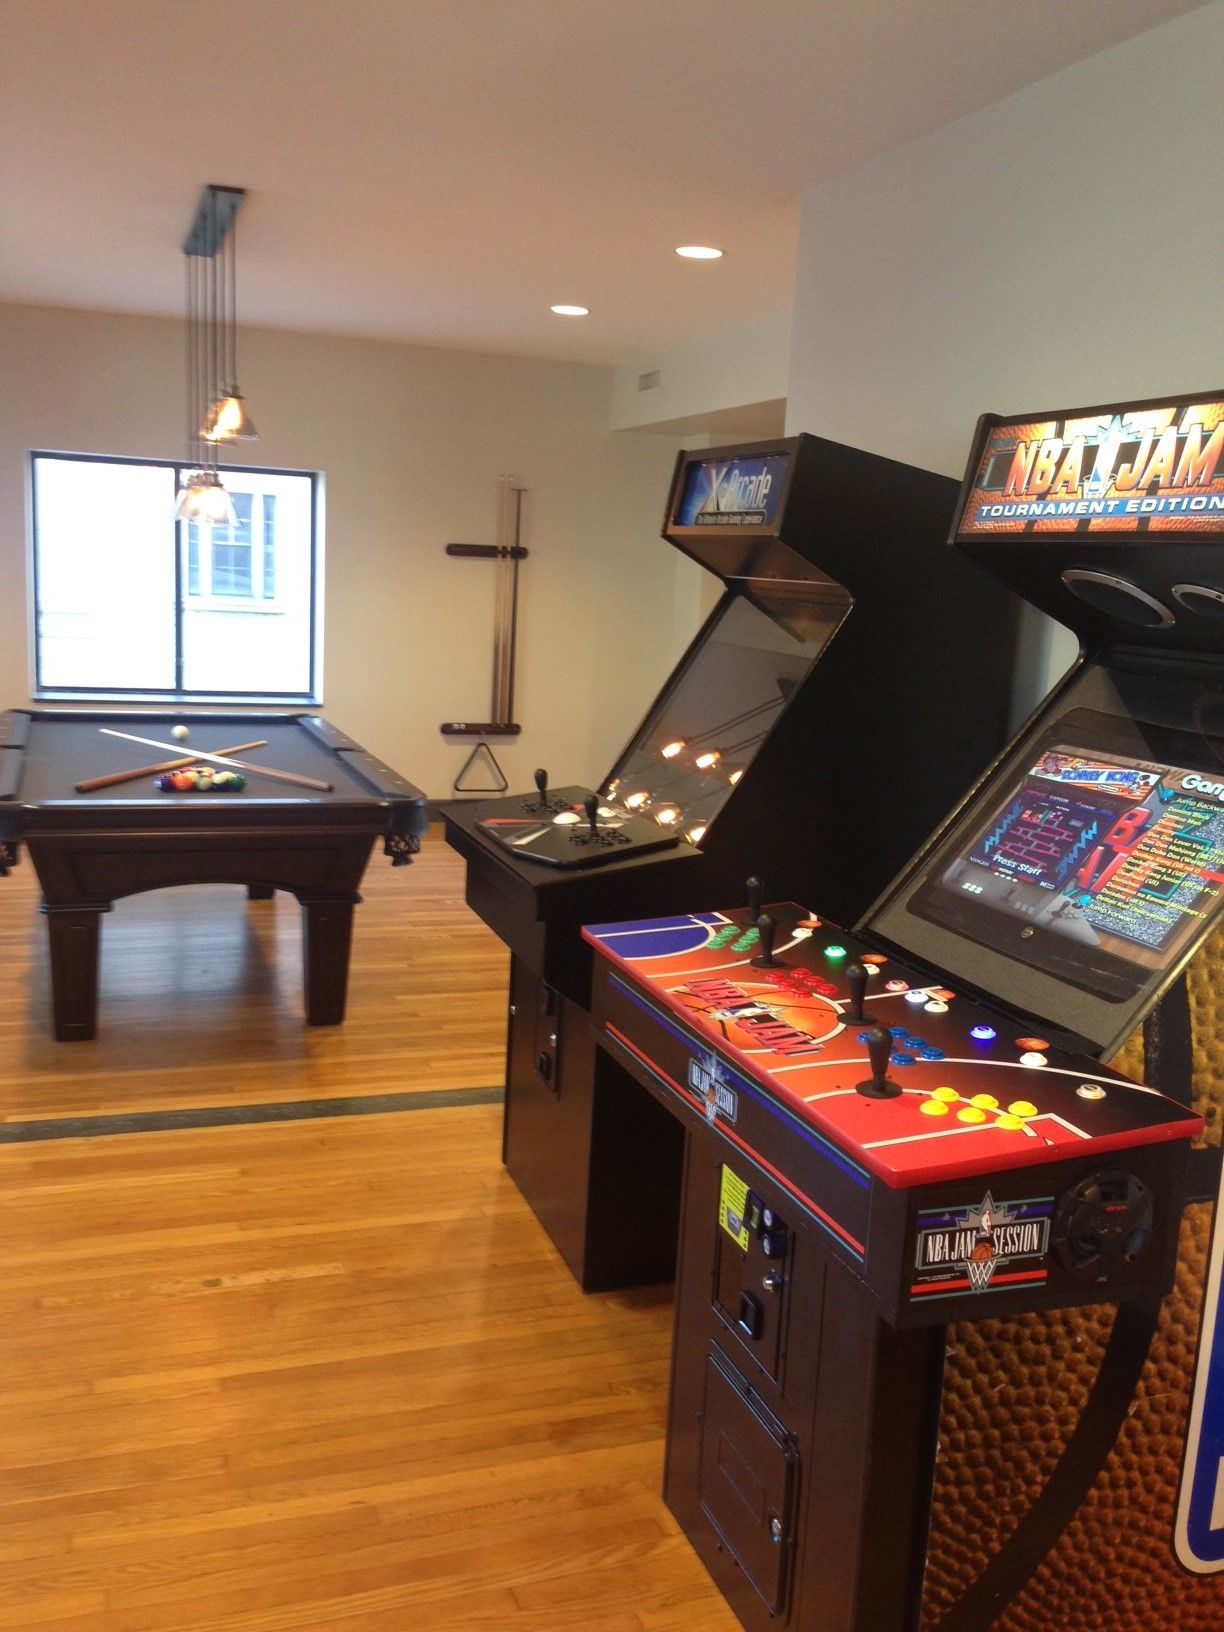 Game Lounge arcade machines. Free for our residents! New